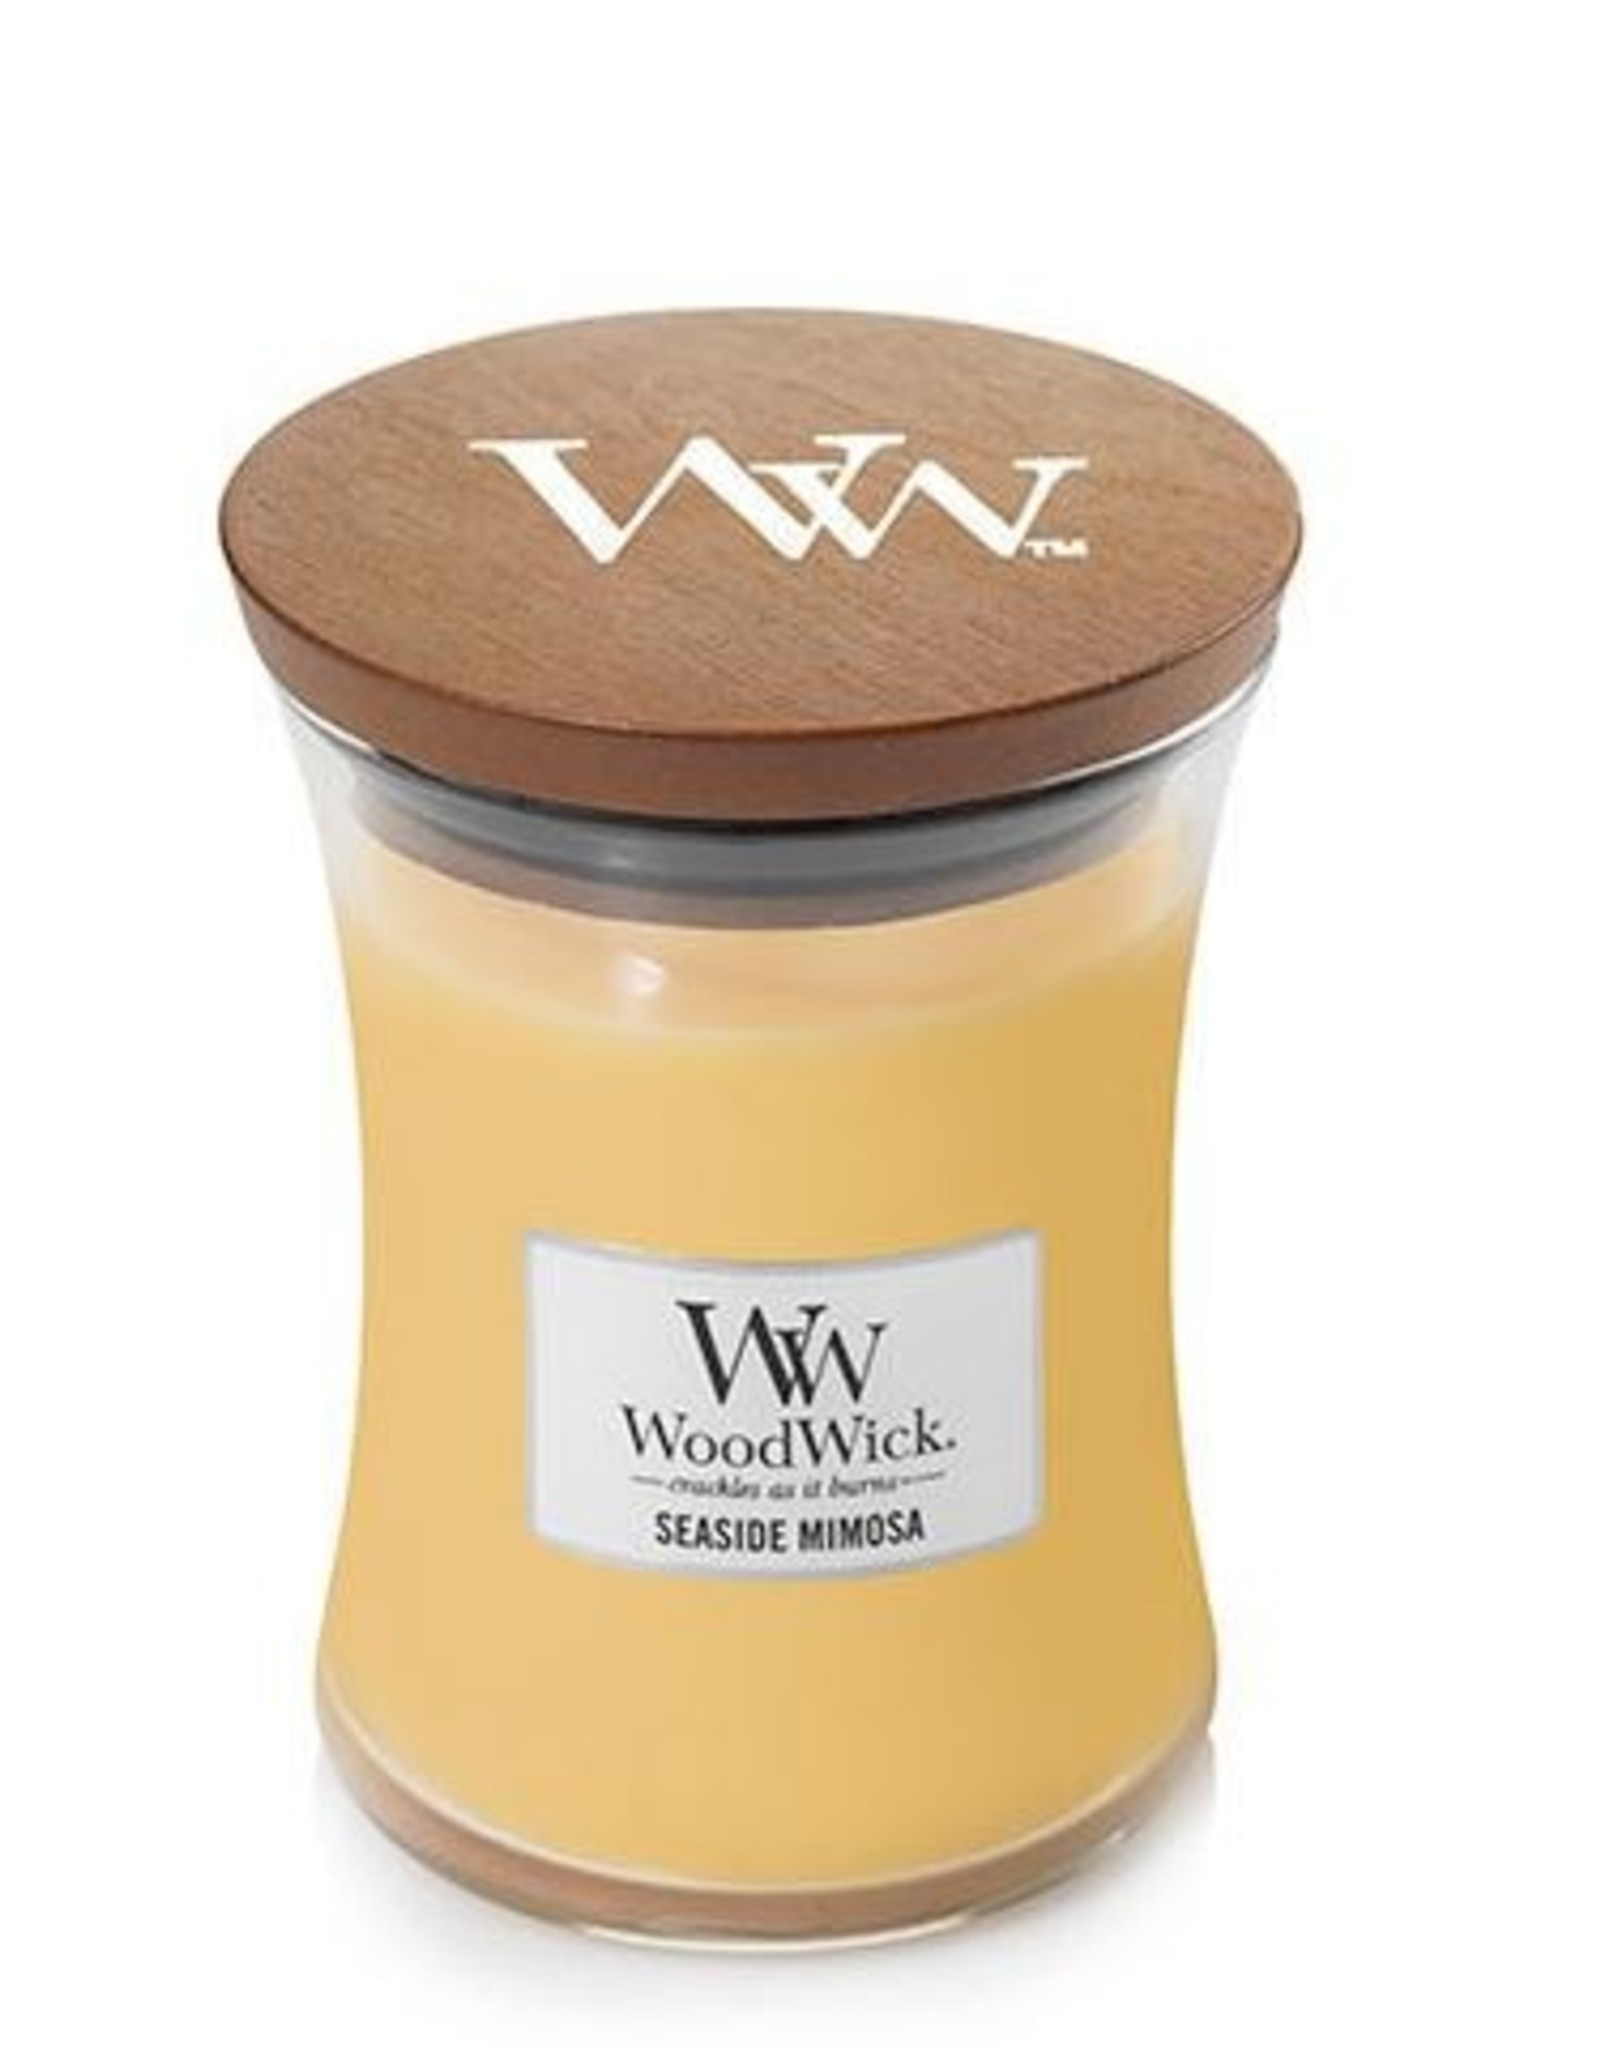 Woodwick Bougie Seaside mimosa